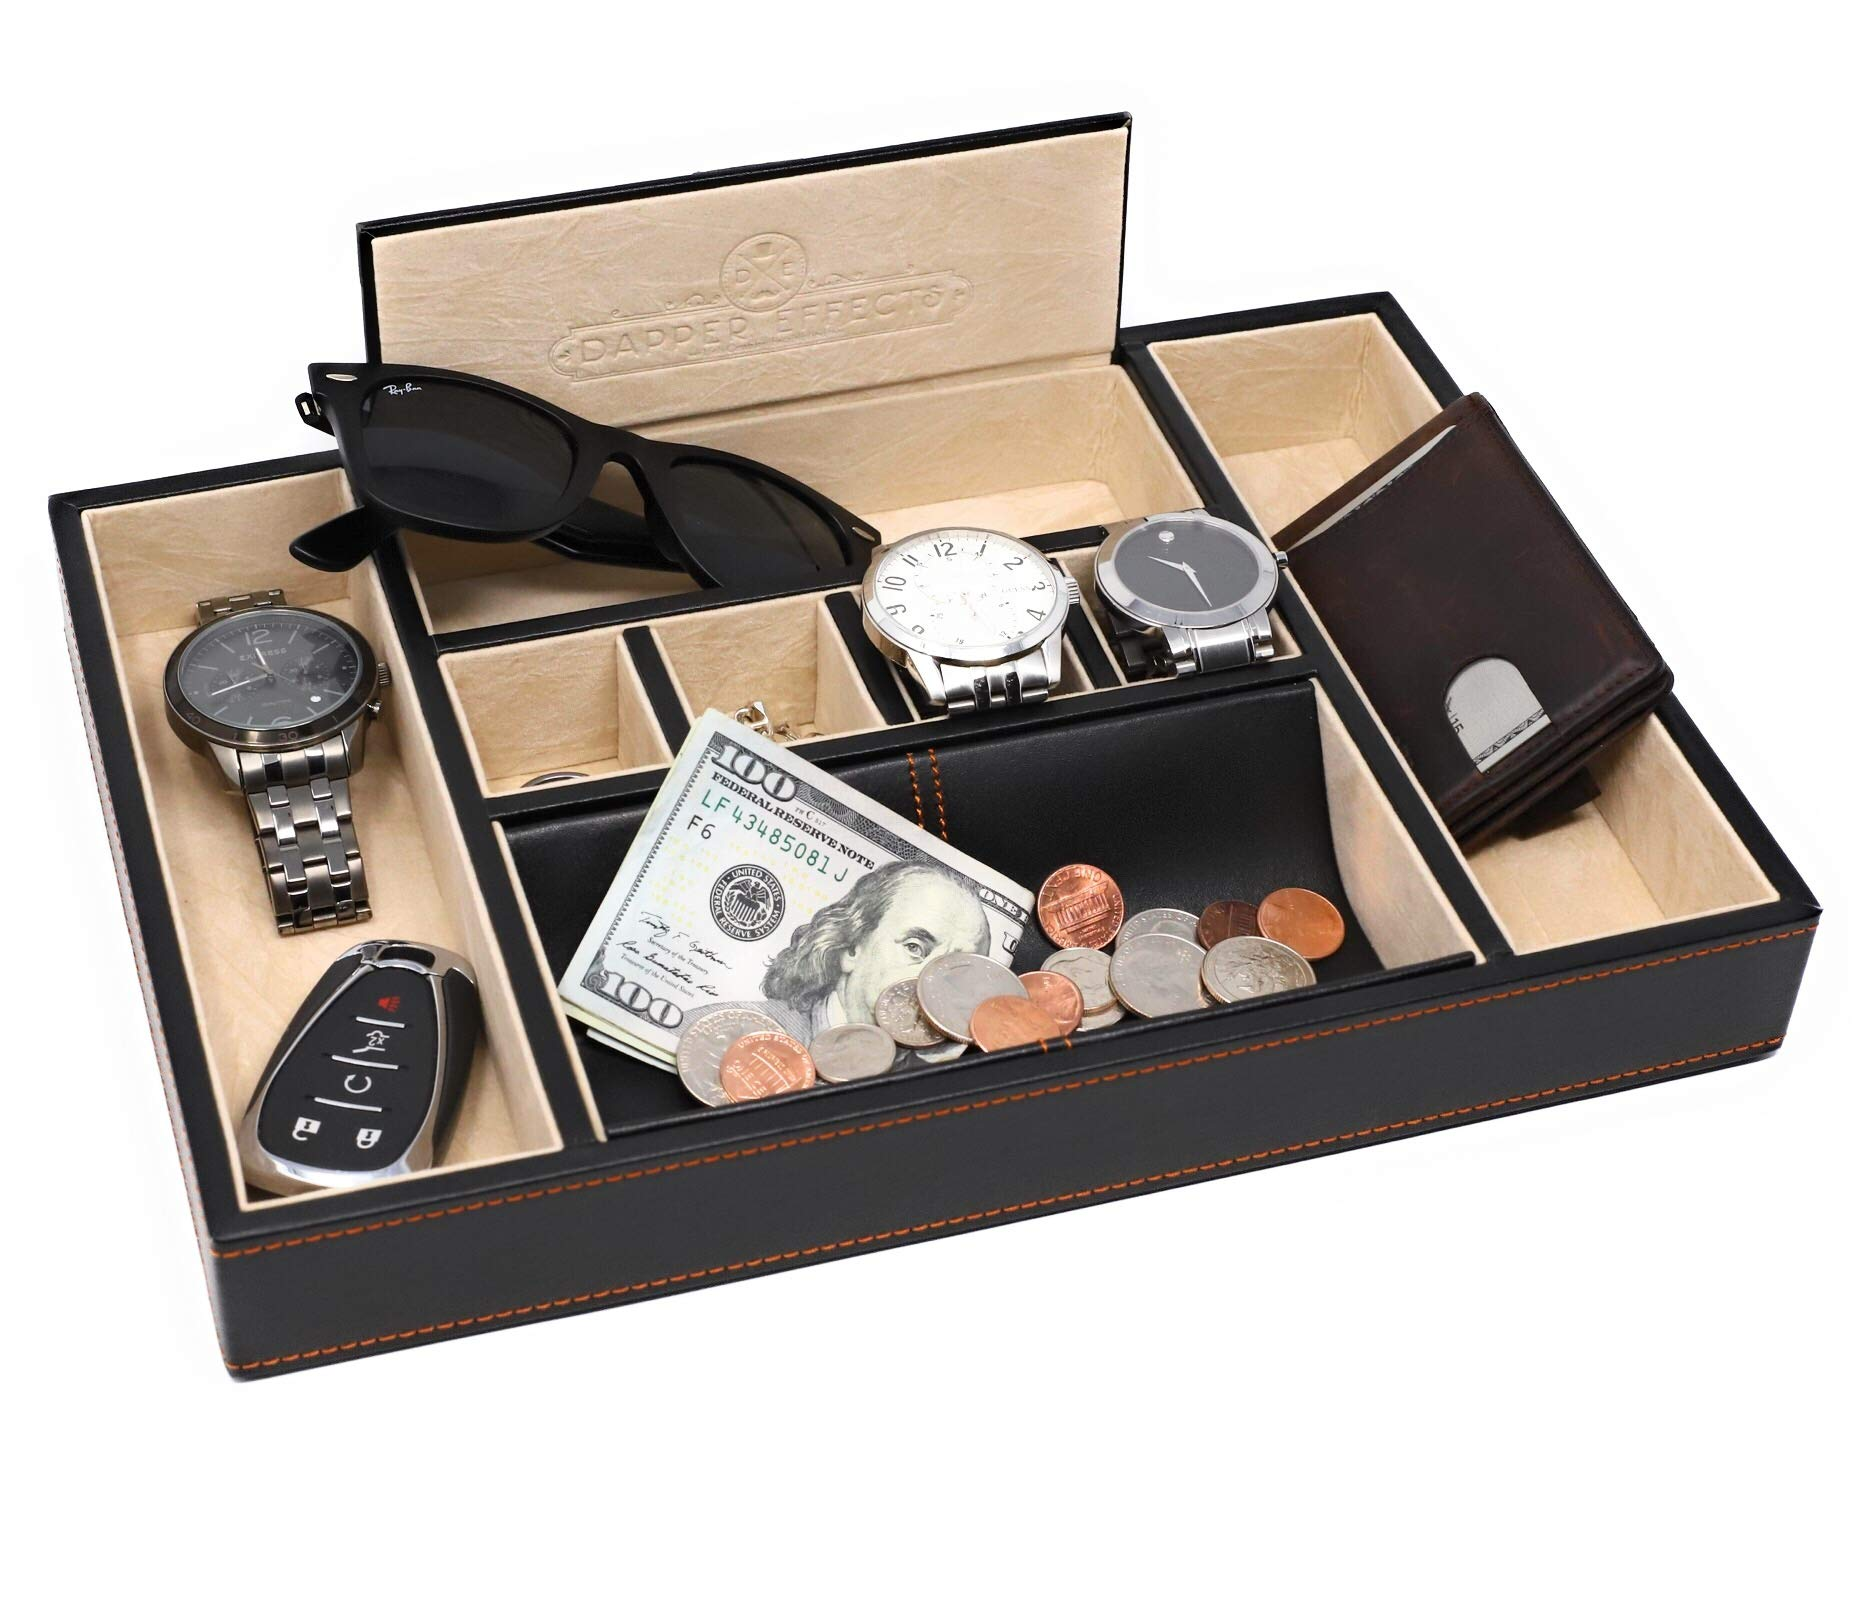 Dapper Effects Mens Valet Tray - Organizer For Desk, Dresser Top Or Nightstand (Black)